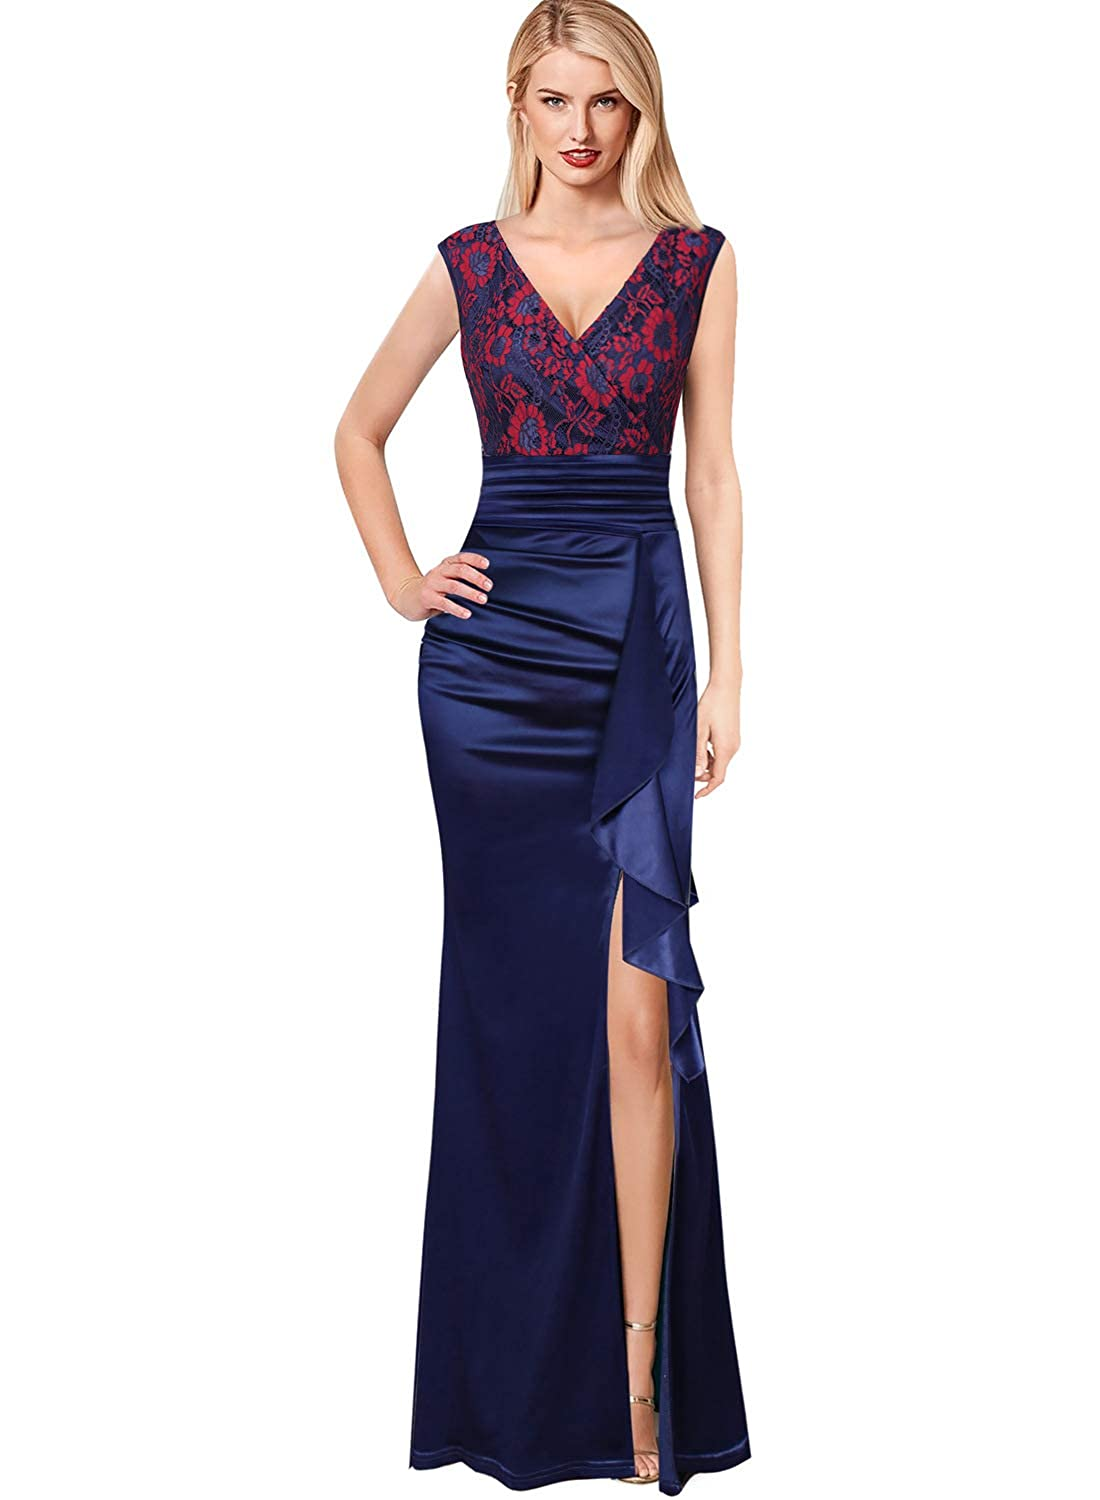 bluee+red Floral Lace VFSHOW Womens V Neck Ruched Ruffles Formal Evening Wedding Party Maxi Dress